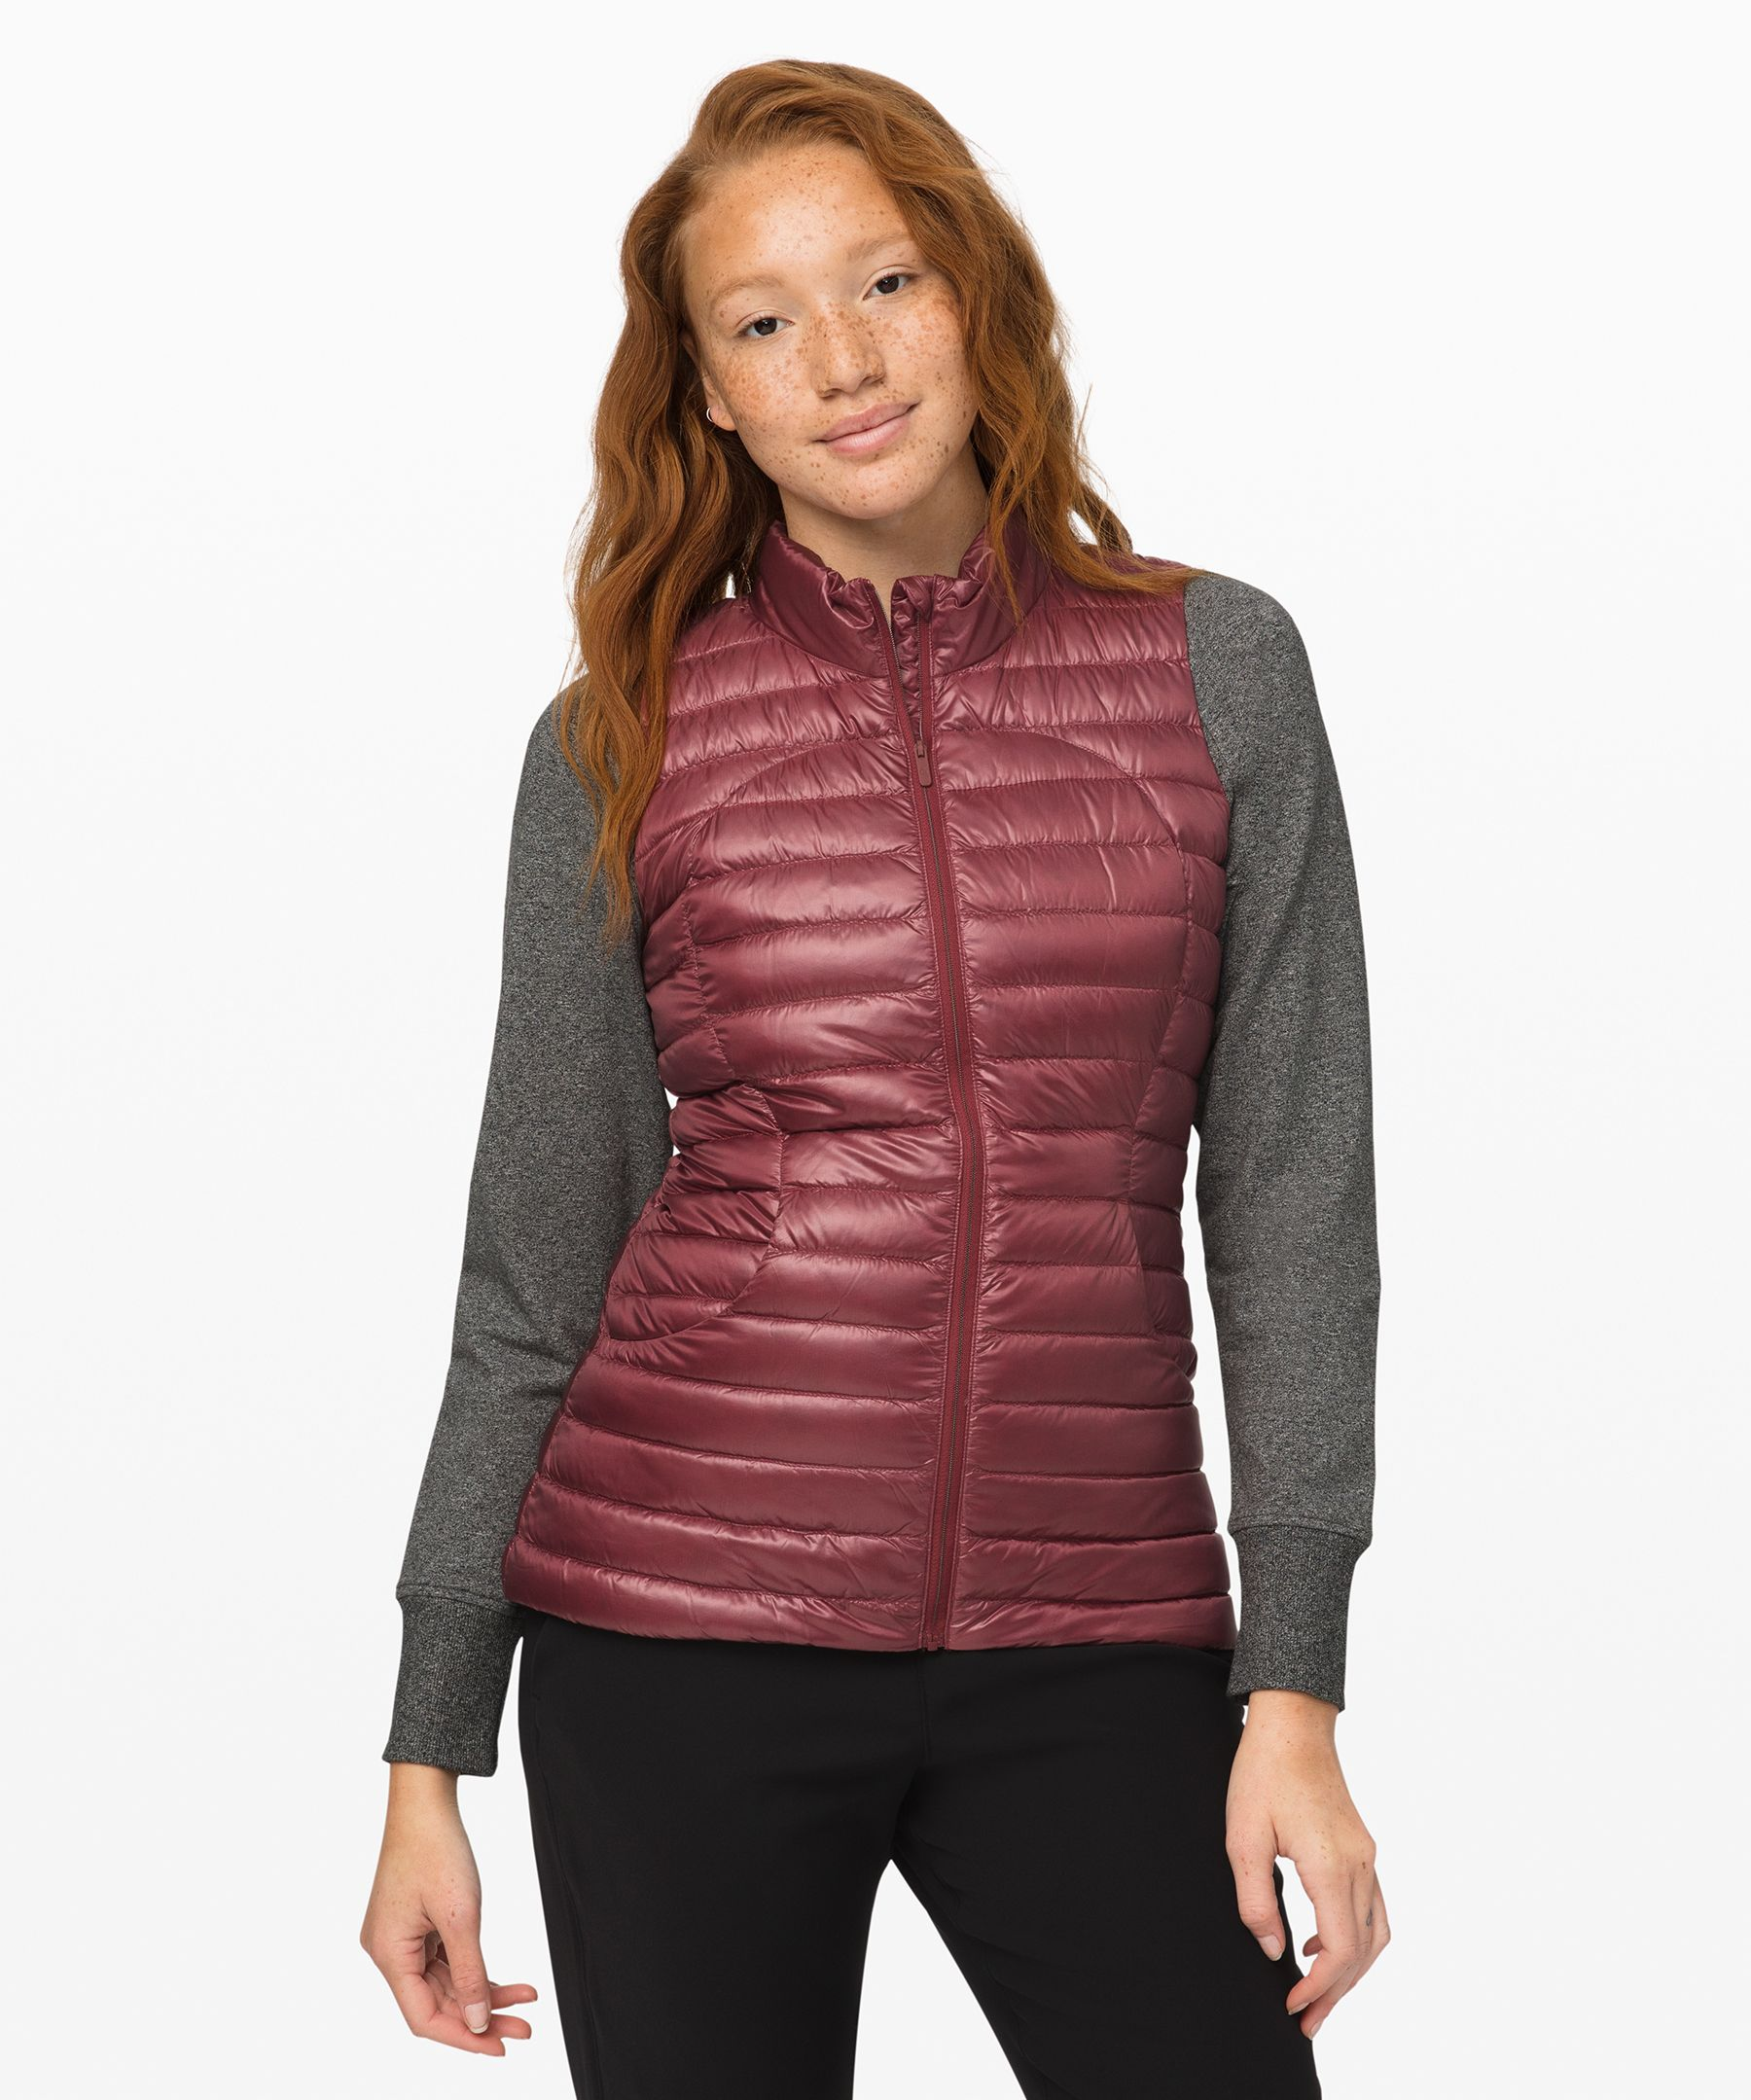 Lightweight and warm, this  vest is perfect for travel.  It\\\'s made with  weather-resistant fabric,  insulated with 700-fill-power  goose down, and comes with a  stuff sack for easy,  space-efficient packing.